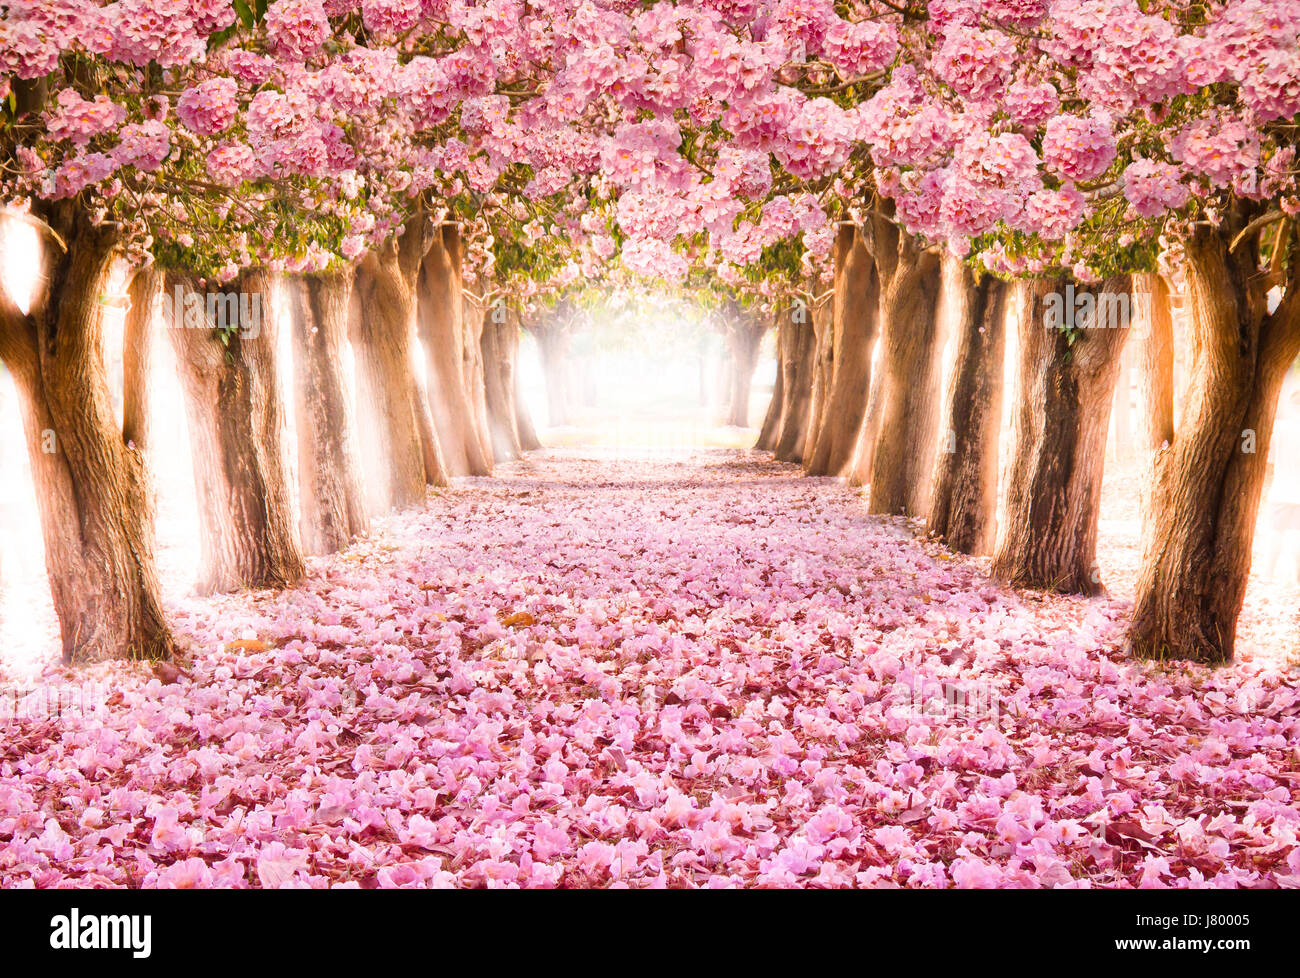 Falling petal over the romantic tunnel of pink flower trees stock falling petal over the romantic tunnel of pink flower trees romantic blossom tree over nature background in spring season flowers background mightylinksfo